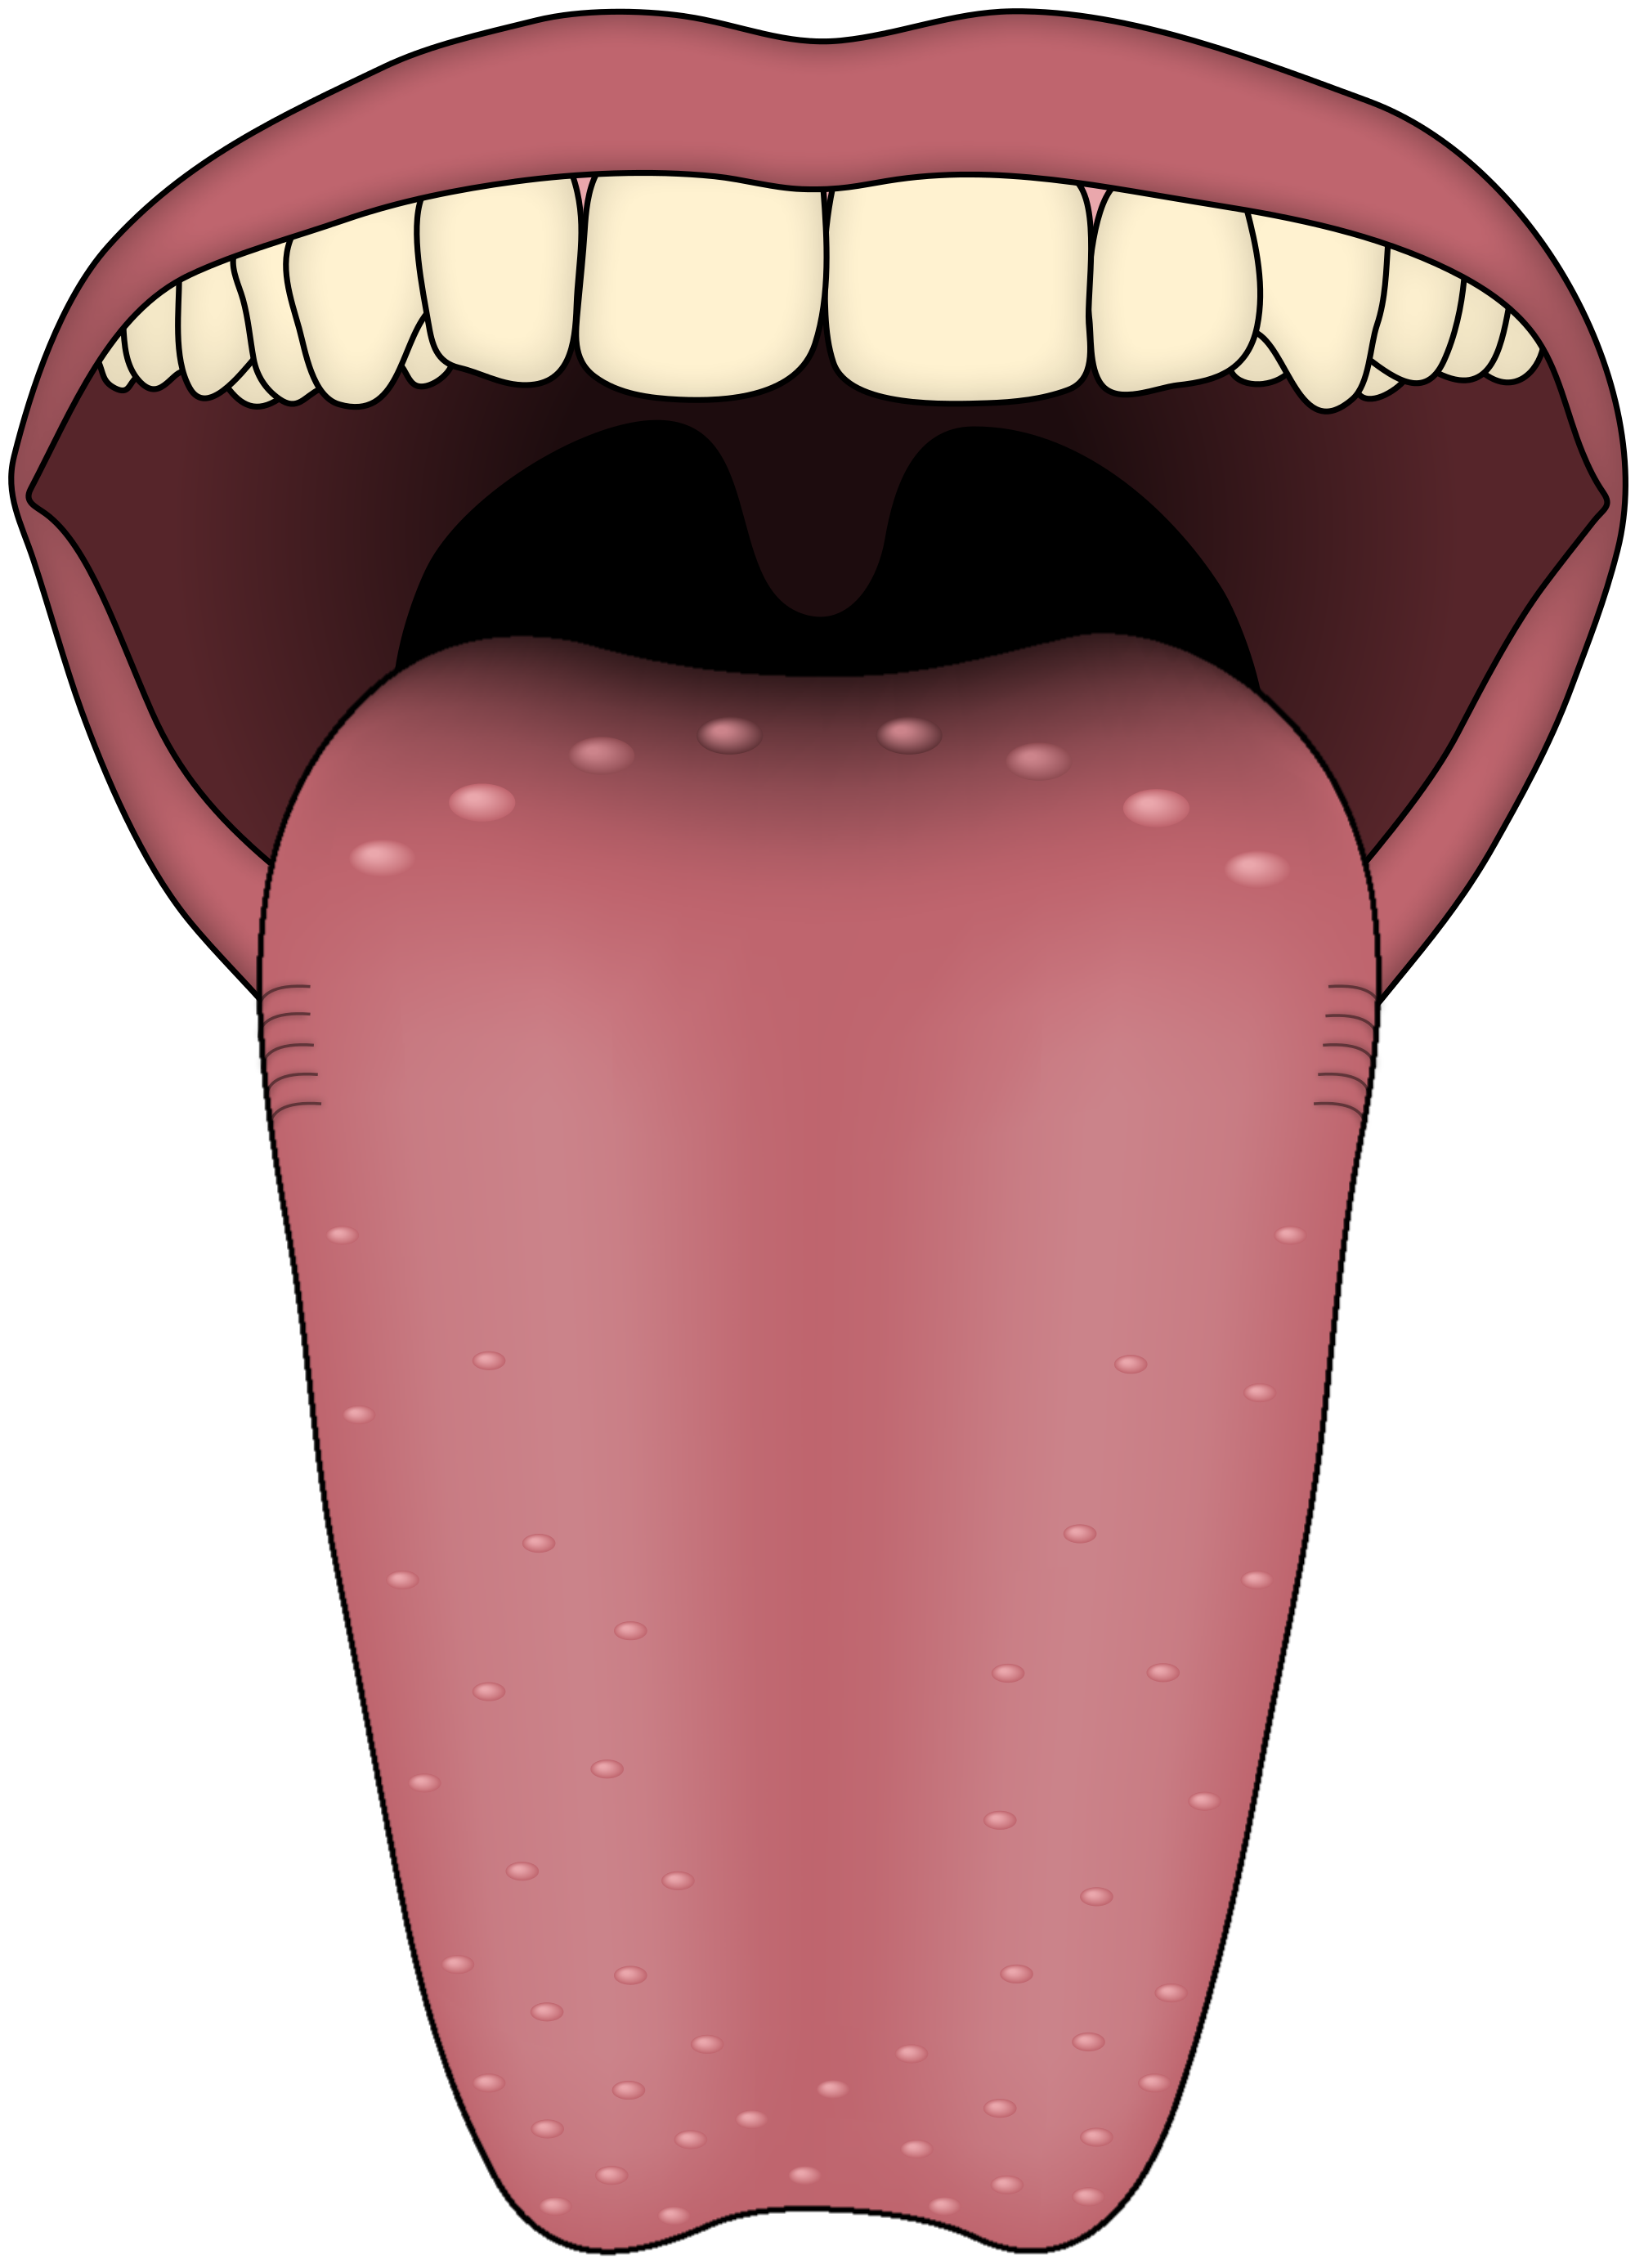 PNG Tongue - 57054